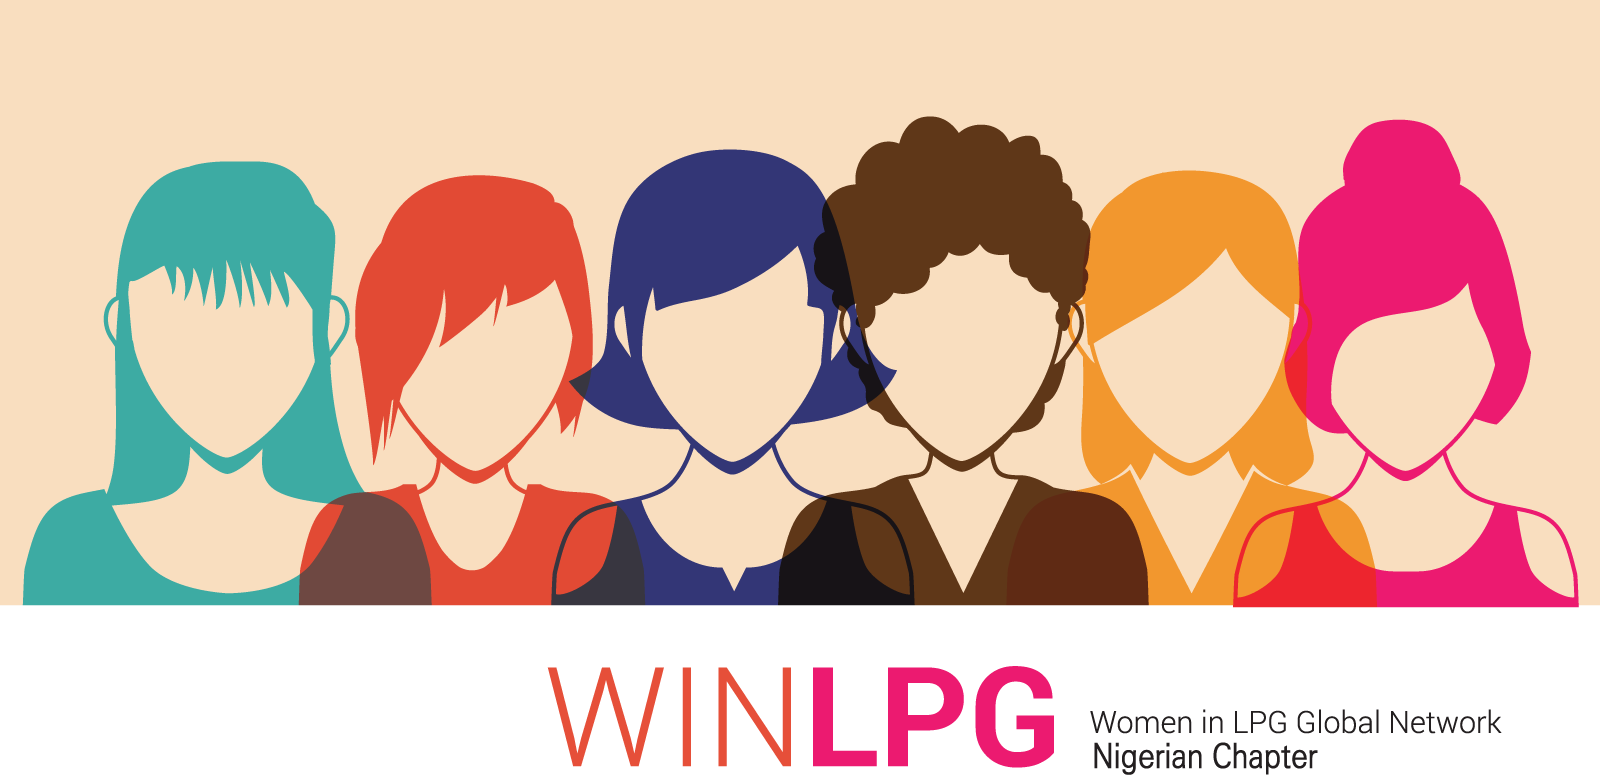 WINLPG LAUNCHES NIGERIA CHAPTER